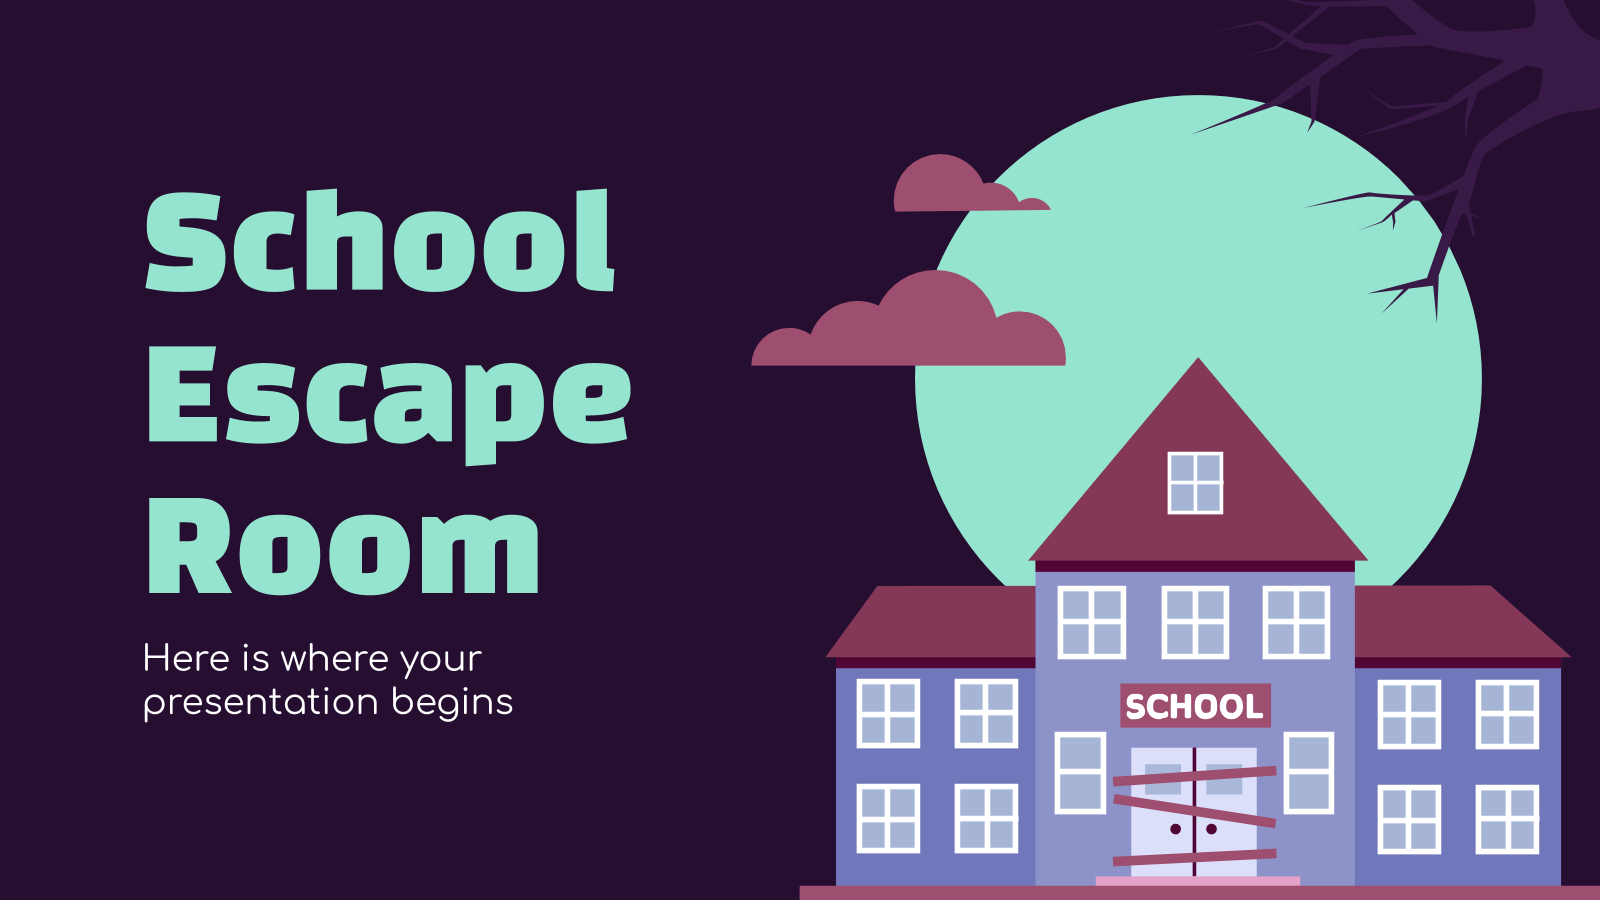 School Escape Room presentation template